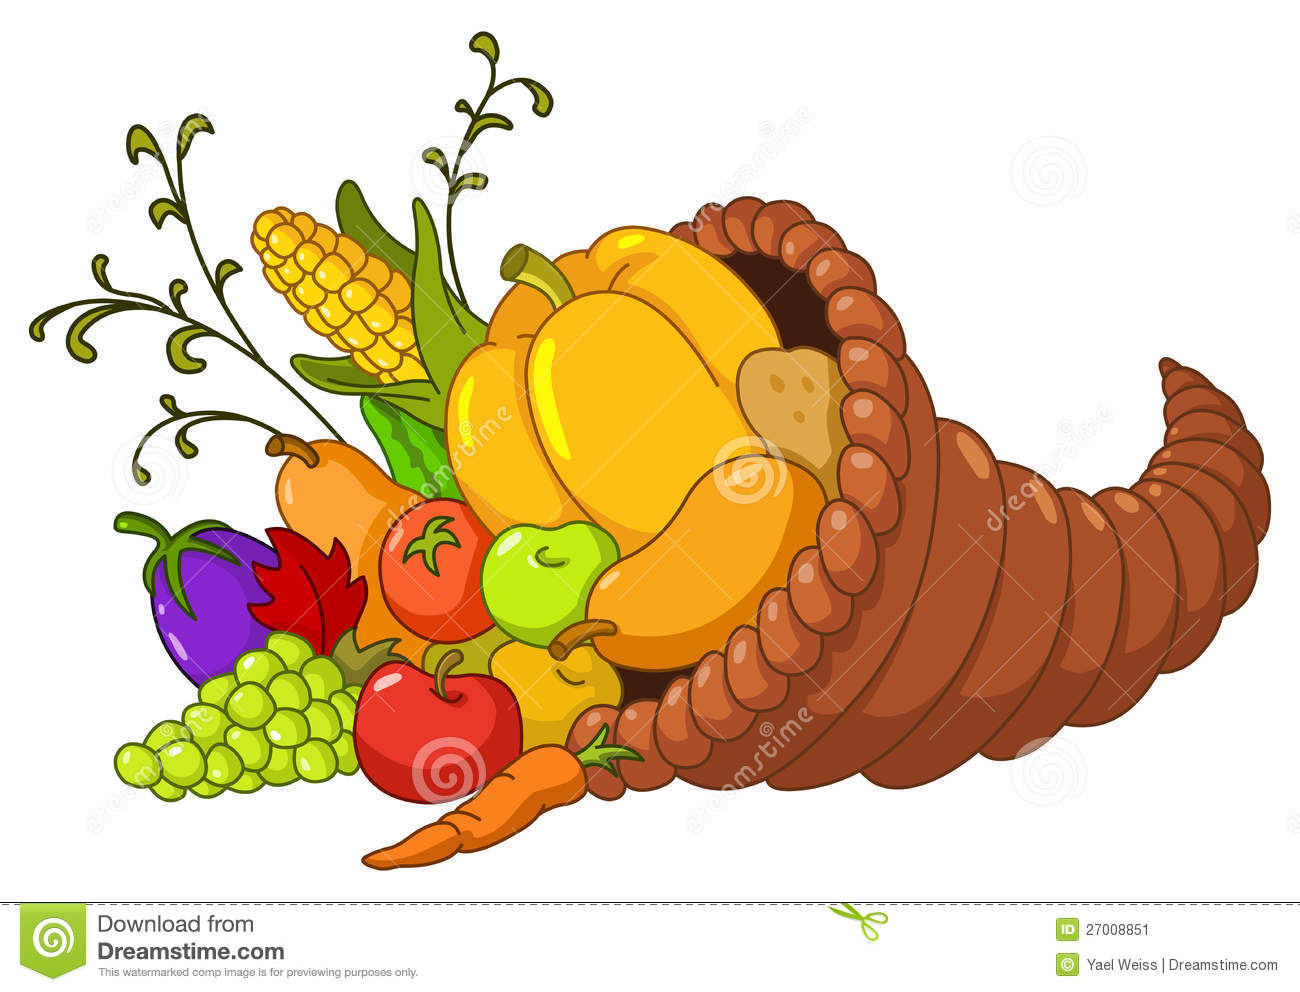 Horn of plenty. Cornucopia with autumn fruits and vegetables.